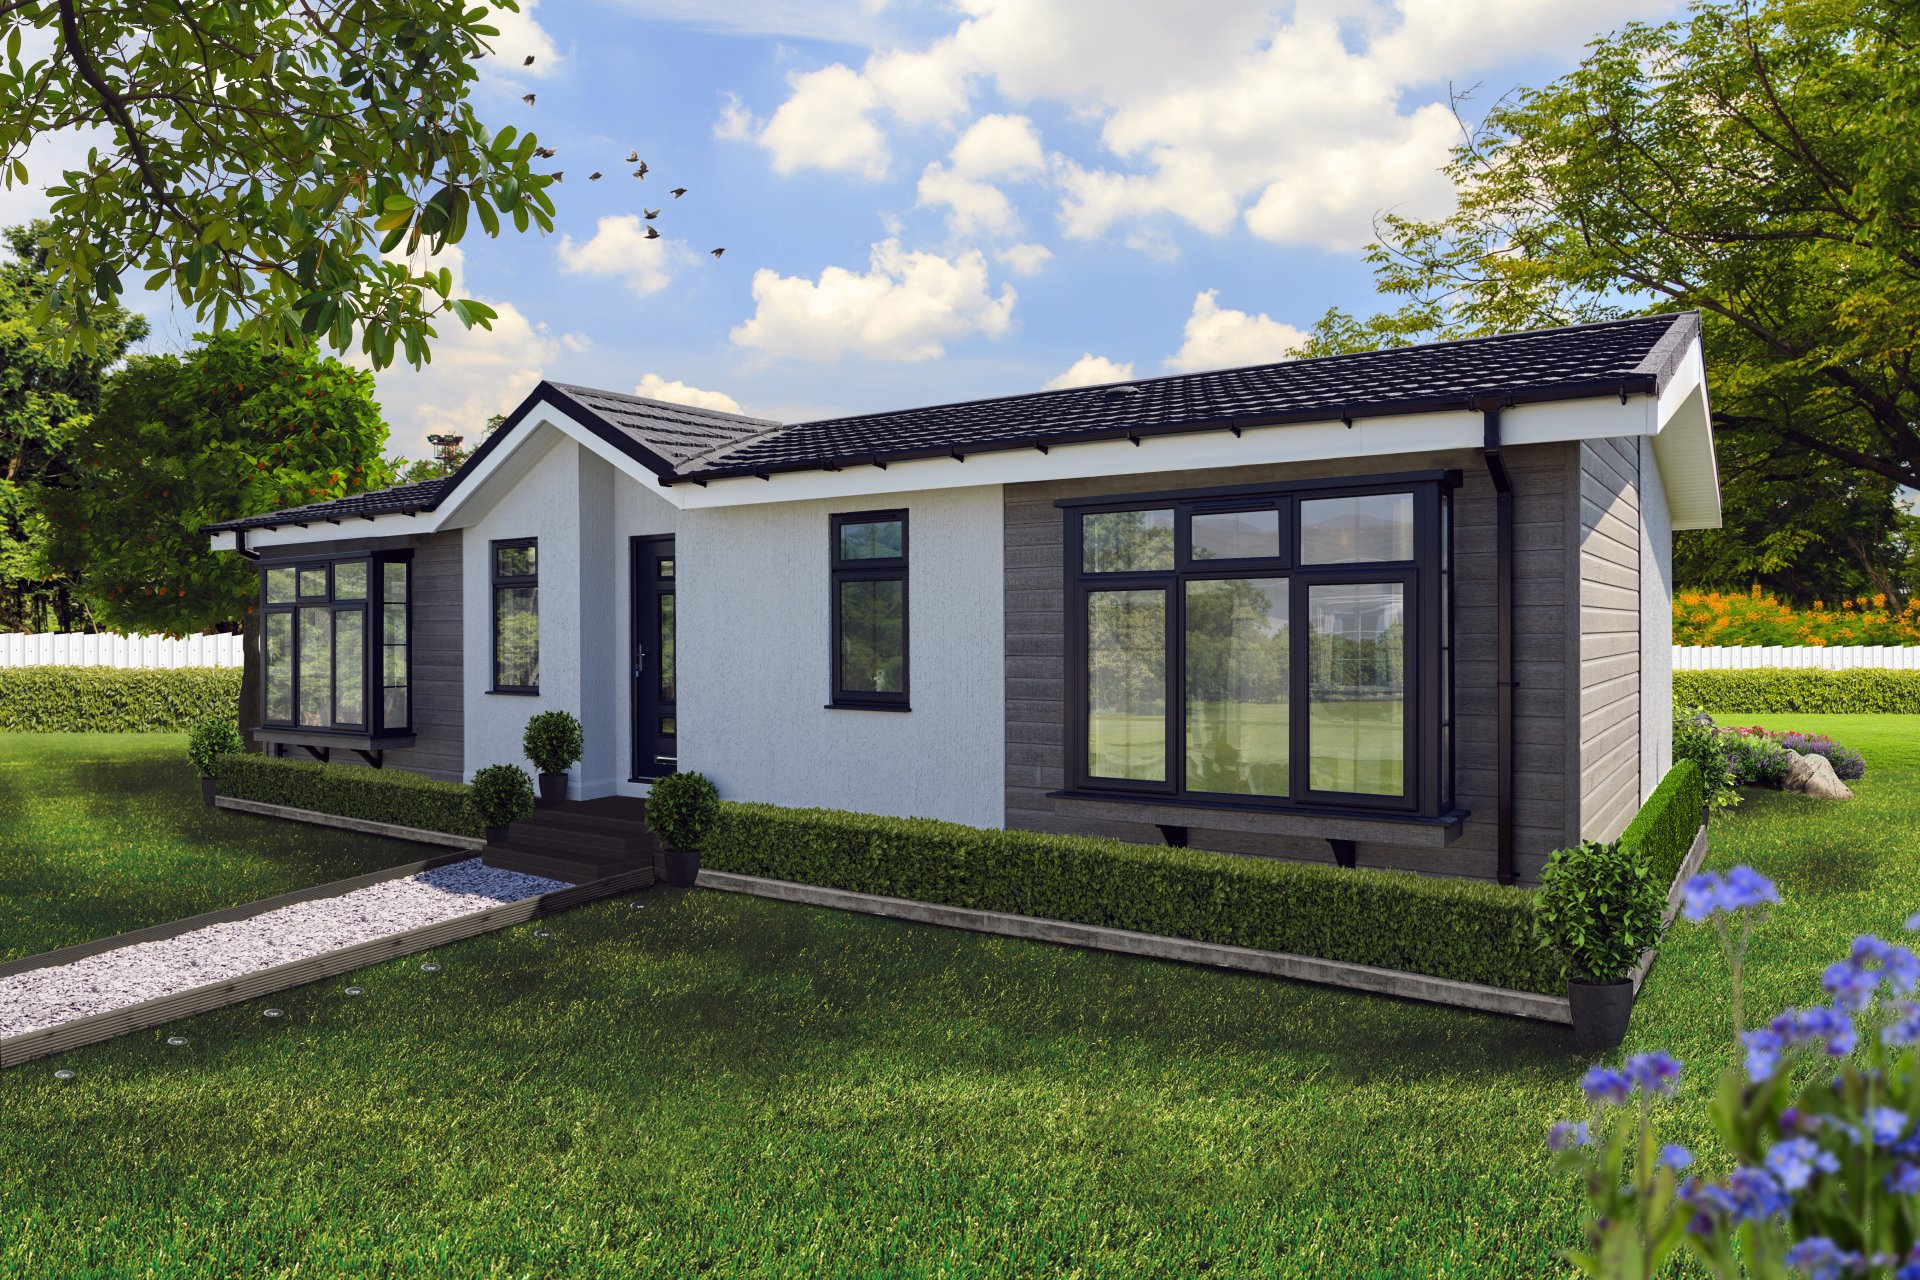 https://www.willerby.com/park-homes/storage/2020/01/015-sf-whh-the-charnwood-1579796729bggIi.jpg